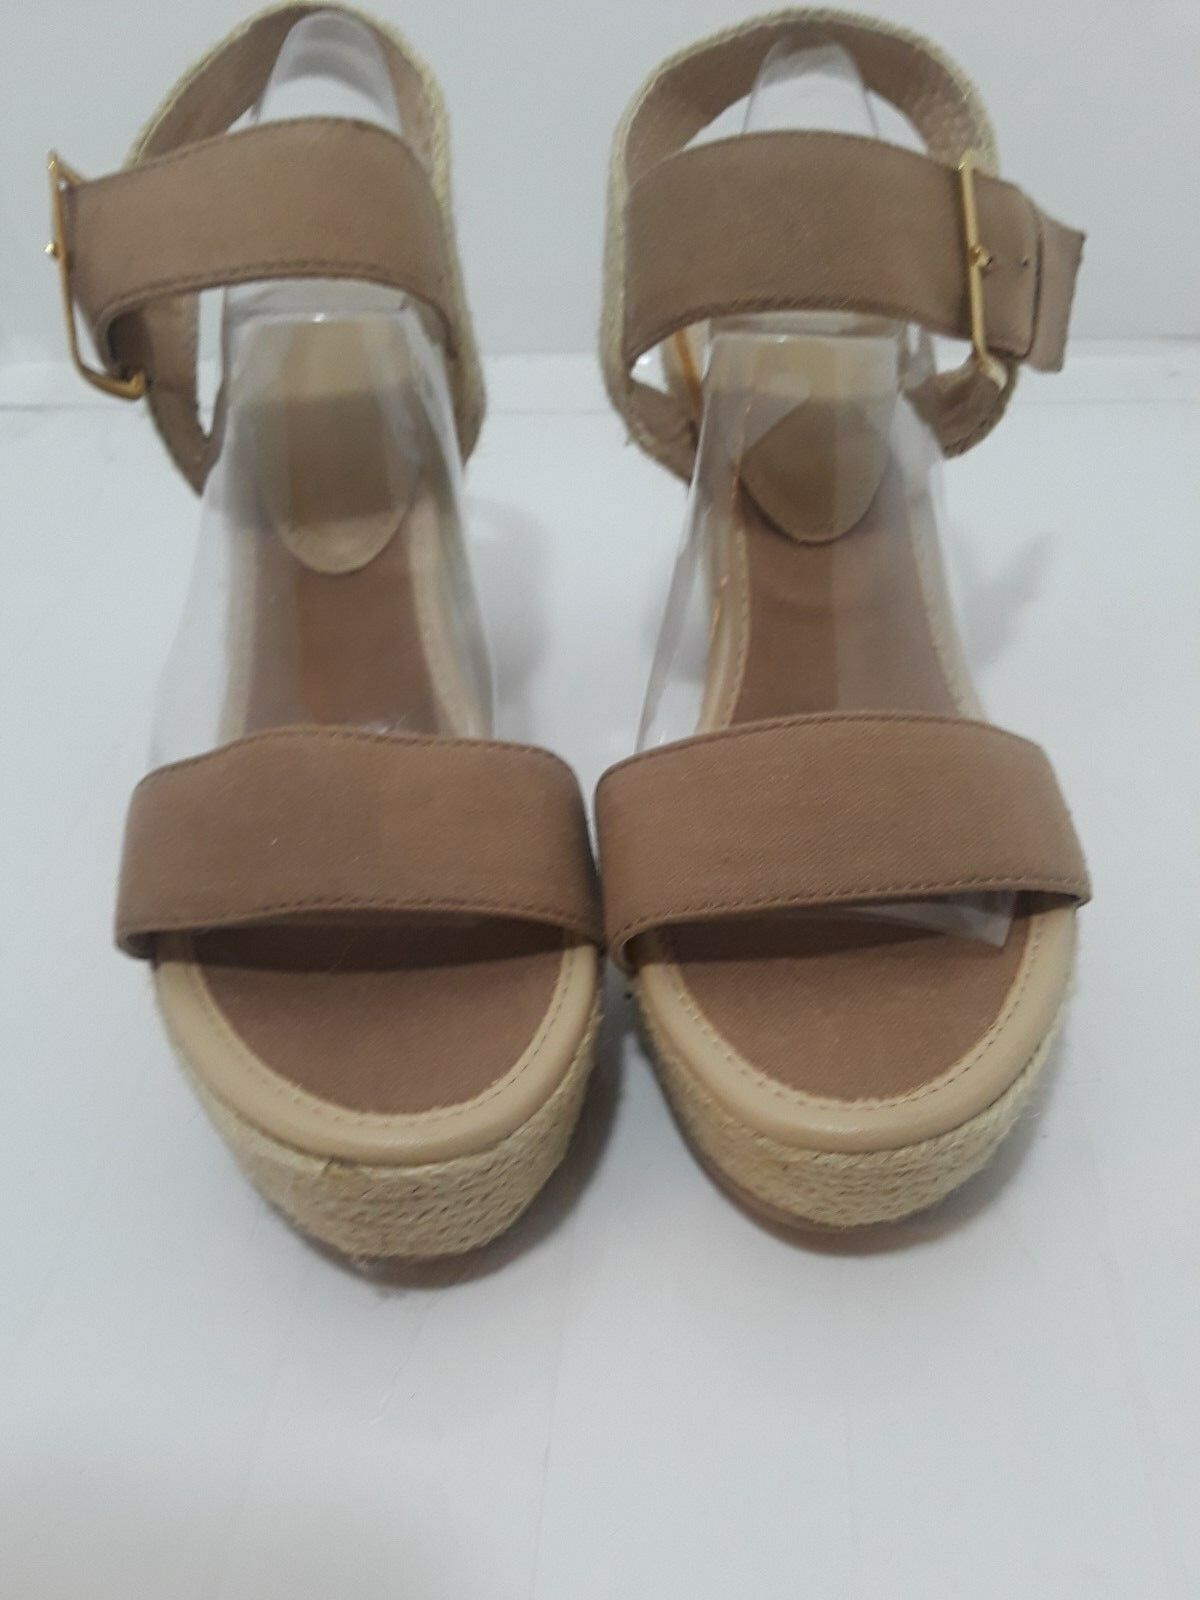 New York and Company WoHommes 's Light Fabric Brown Fabric Light Upper Wedge Shoes Size 9 M 982433